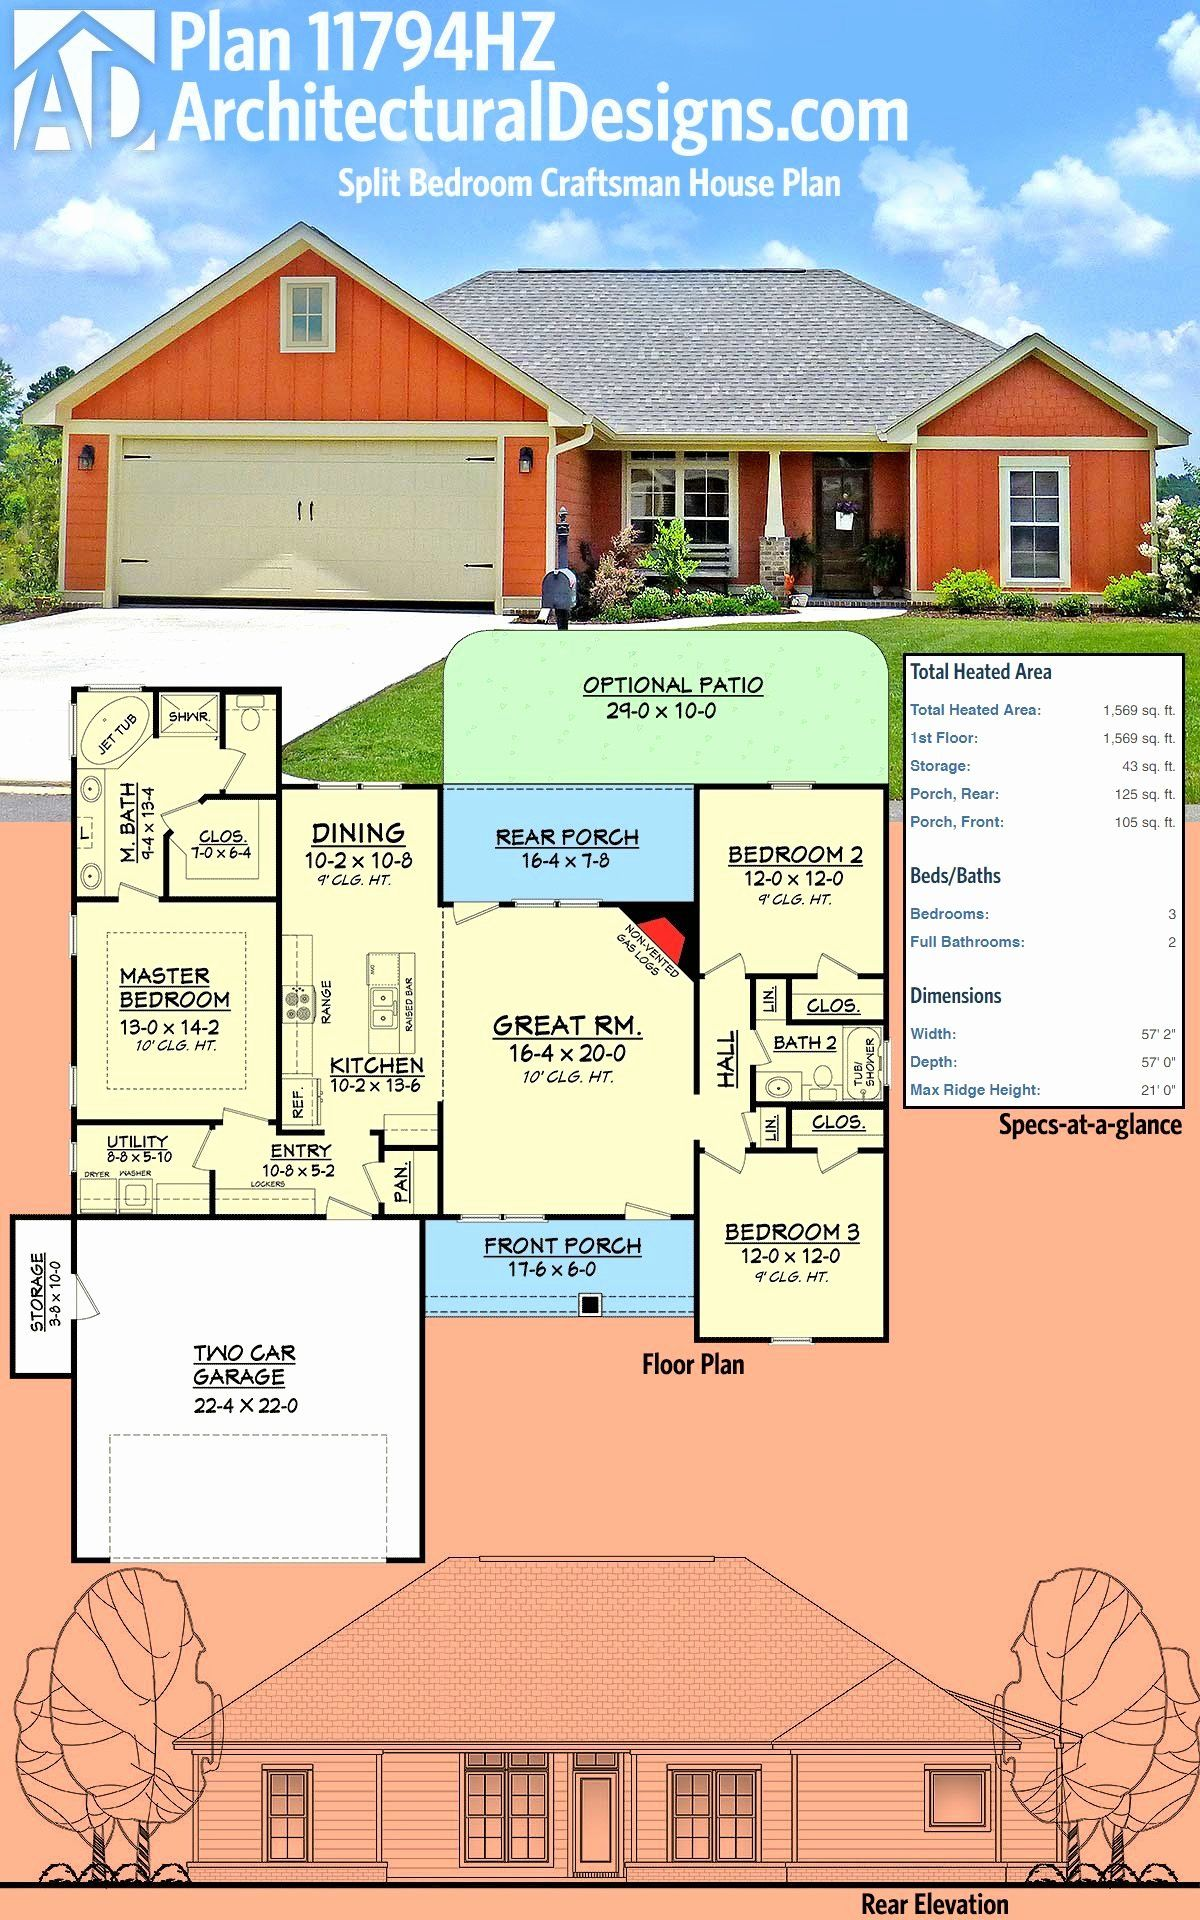 Split Bedroom House Plans Awesome 87 Best House Plan Ideas Images In 2020 In 2020 Craftsman House Craftsman House Plans House Plans